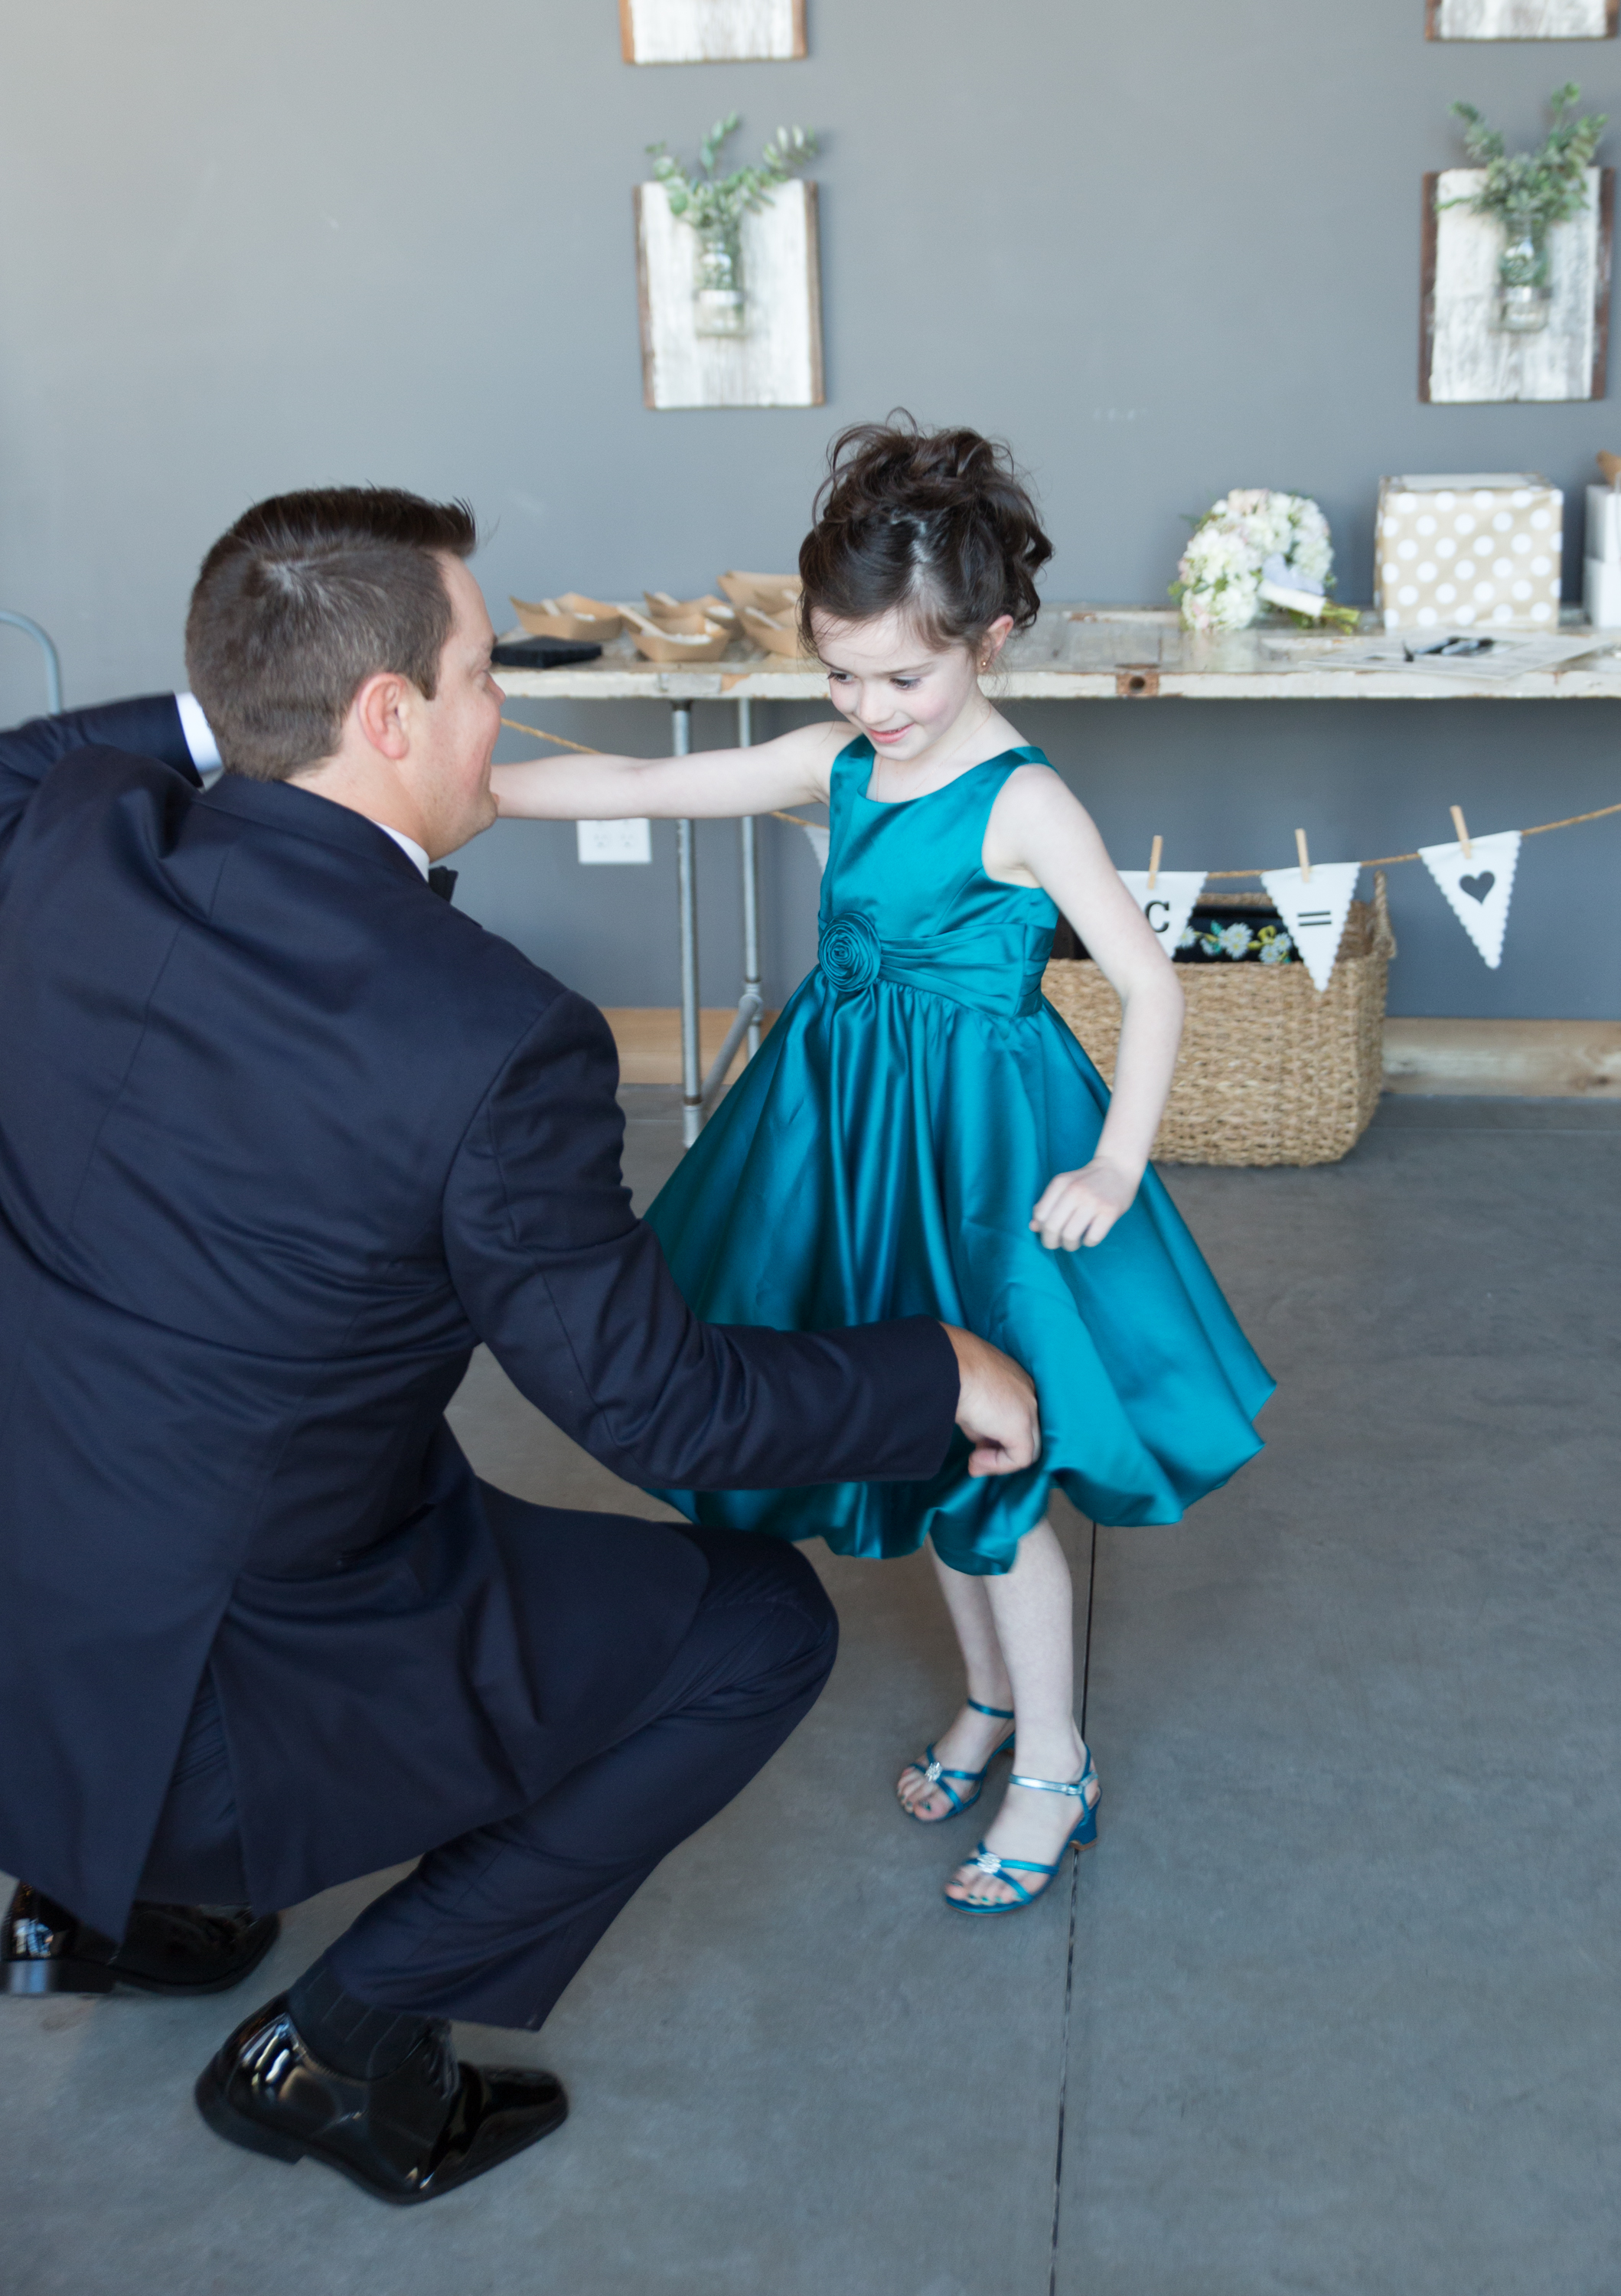 AND OF COURSE, A DANCE WITH DAUGHTER. (SO PROUD!)